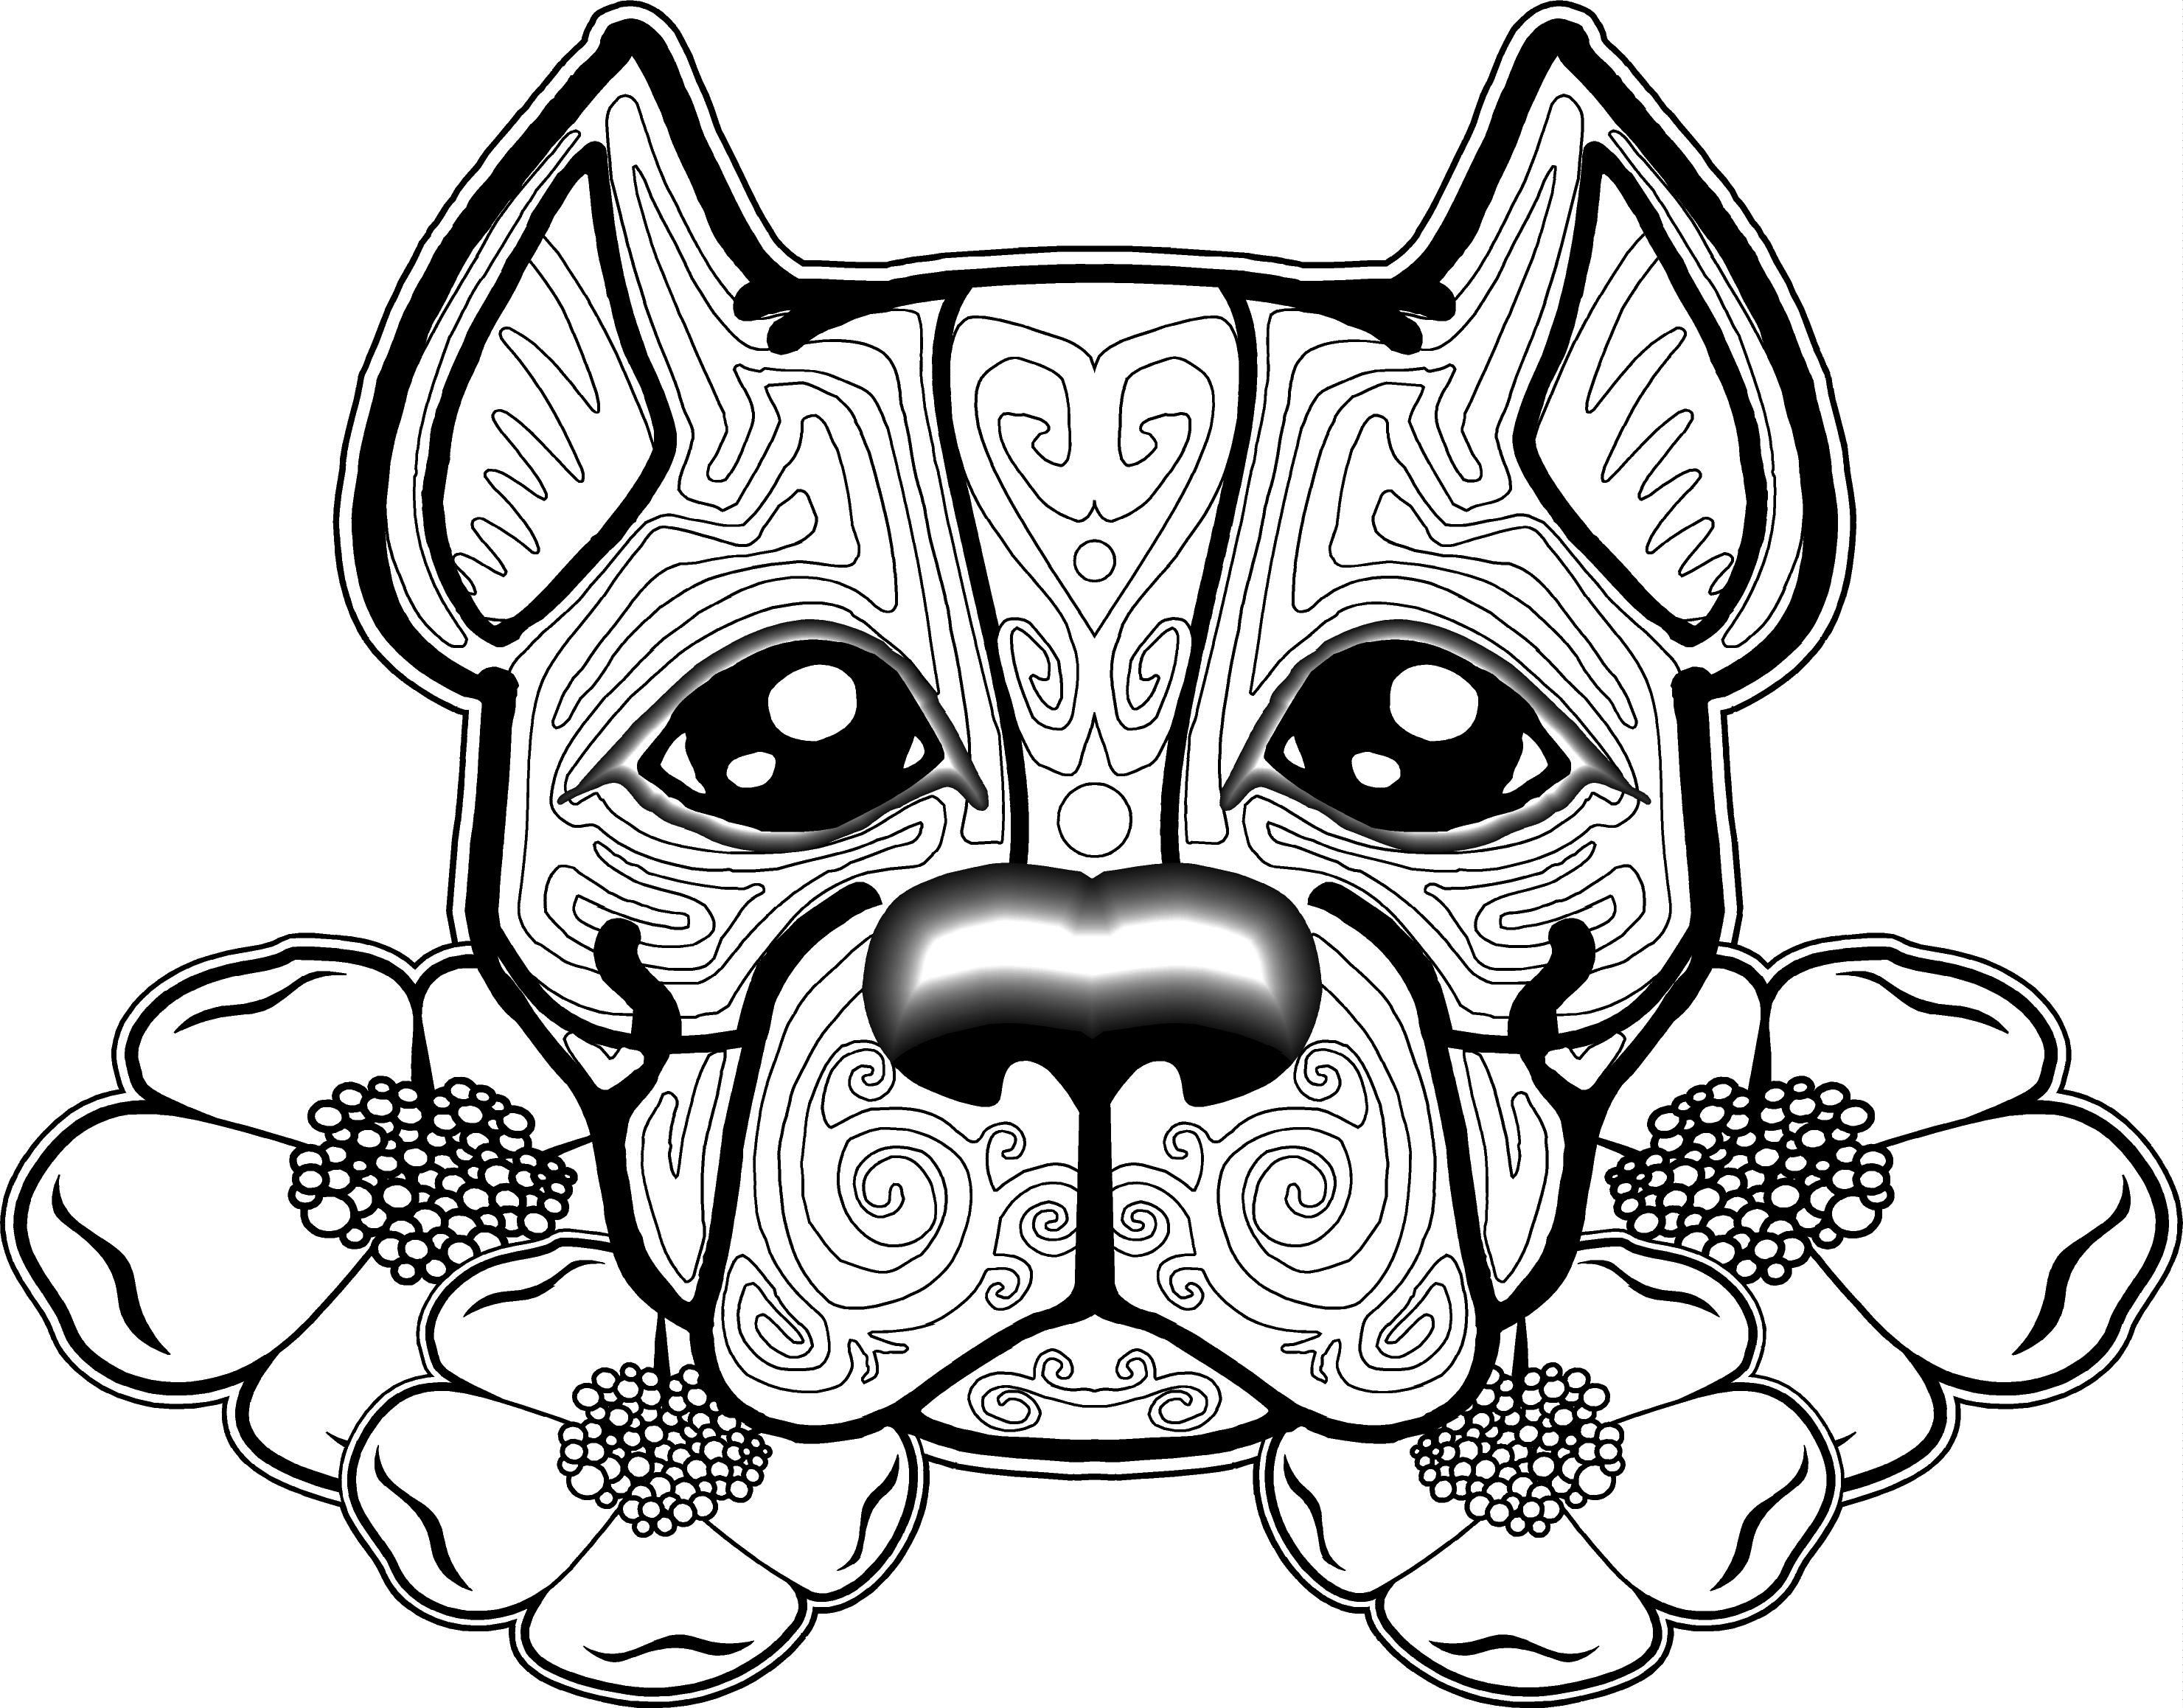 printable dog coloring pages free dog coloring pages for adults | FREE Printable Coloring Pages  printable dog coloring pages